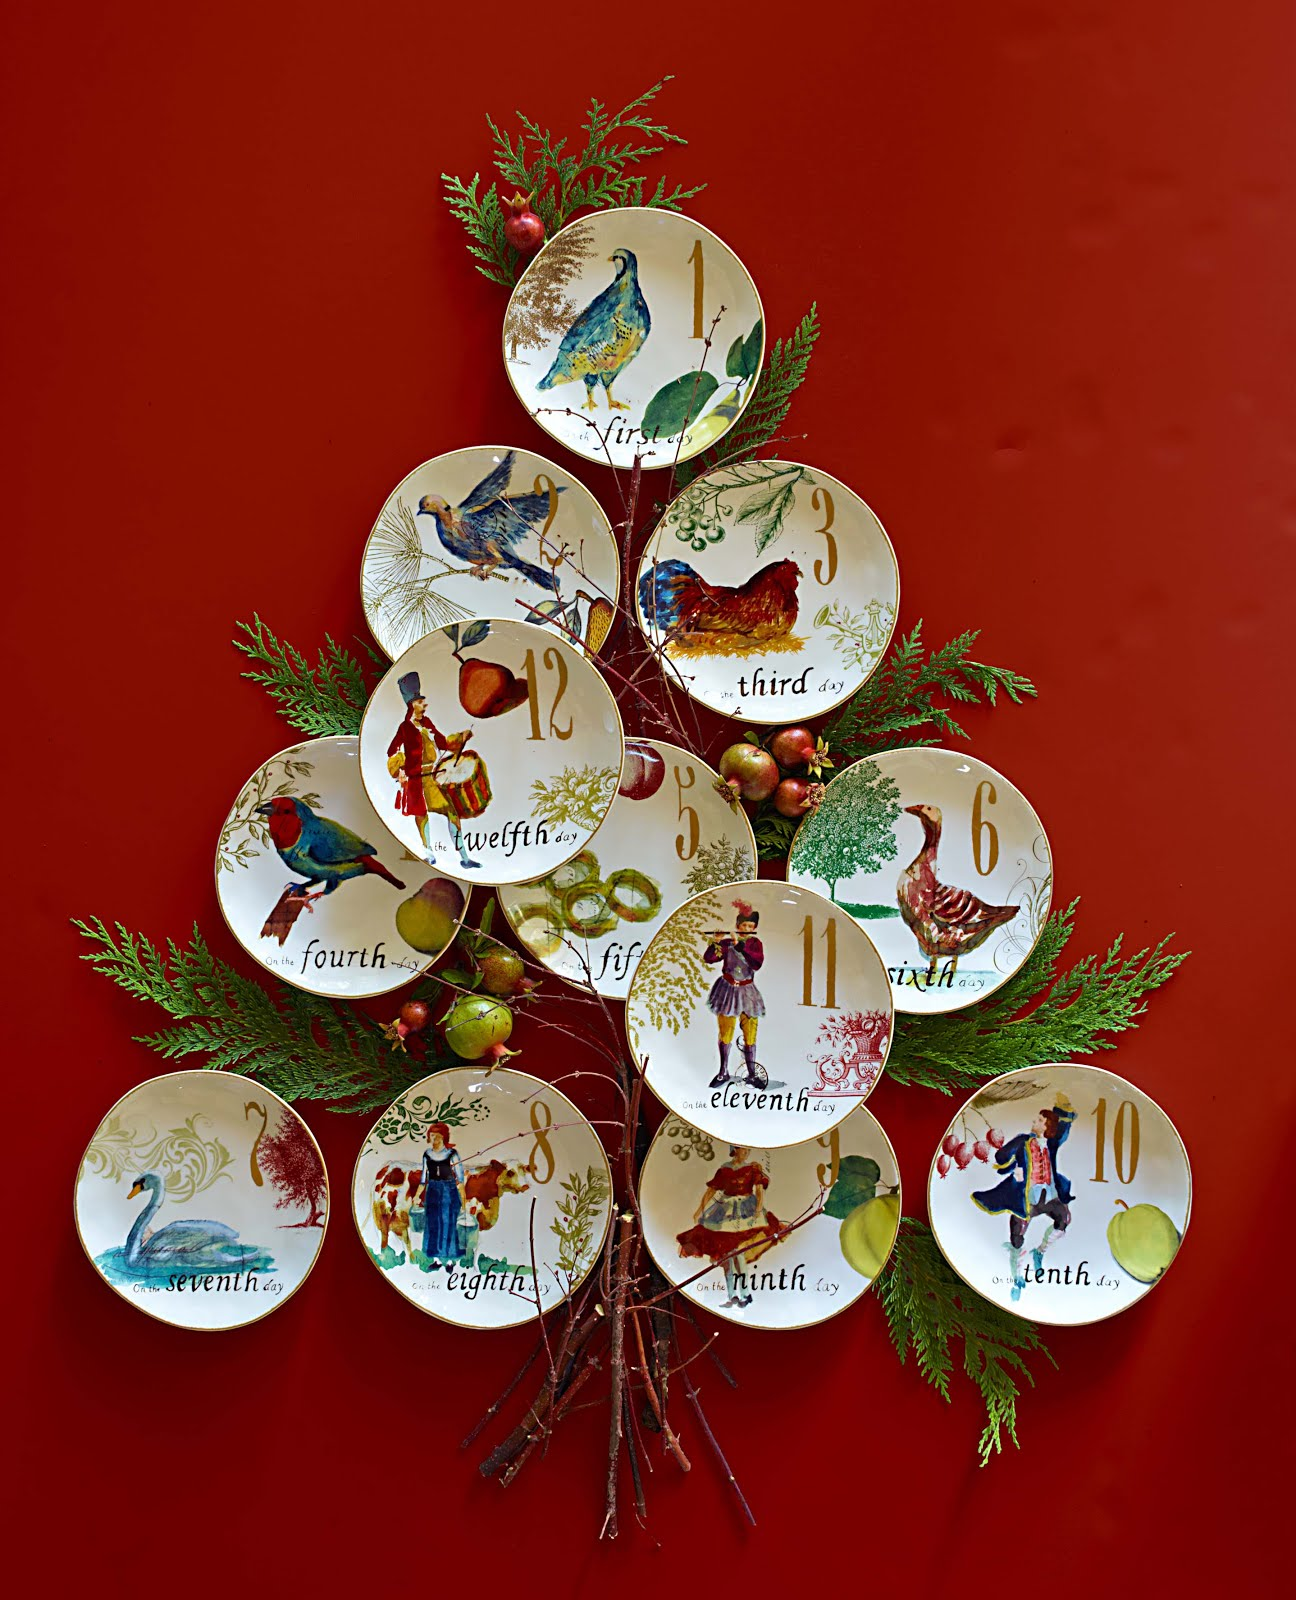 Pottery Barn Christmas Dishes: 12 Days Of Christmas Dinnerware Set & Another Idea For